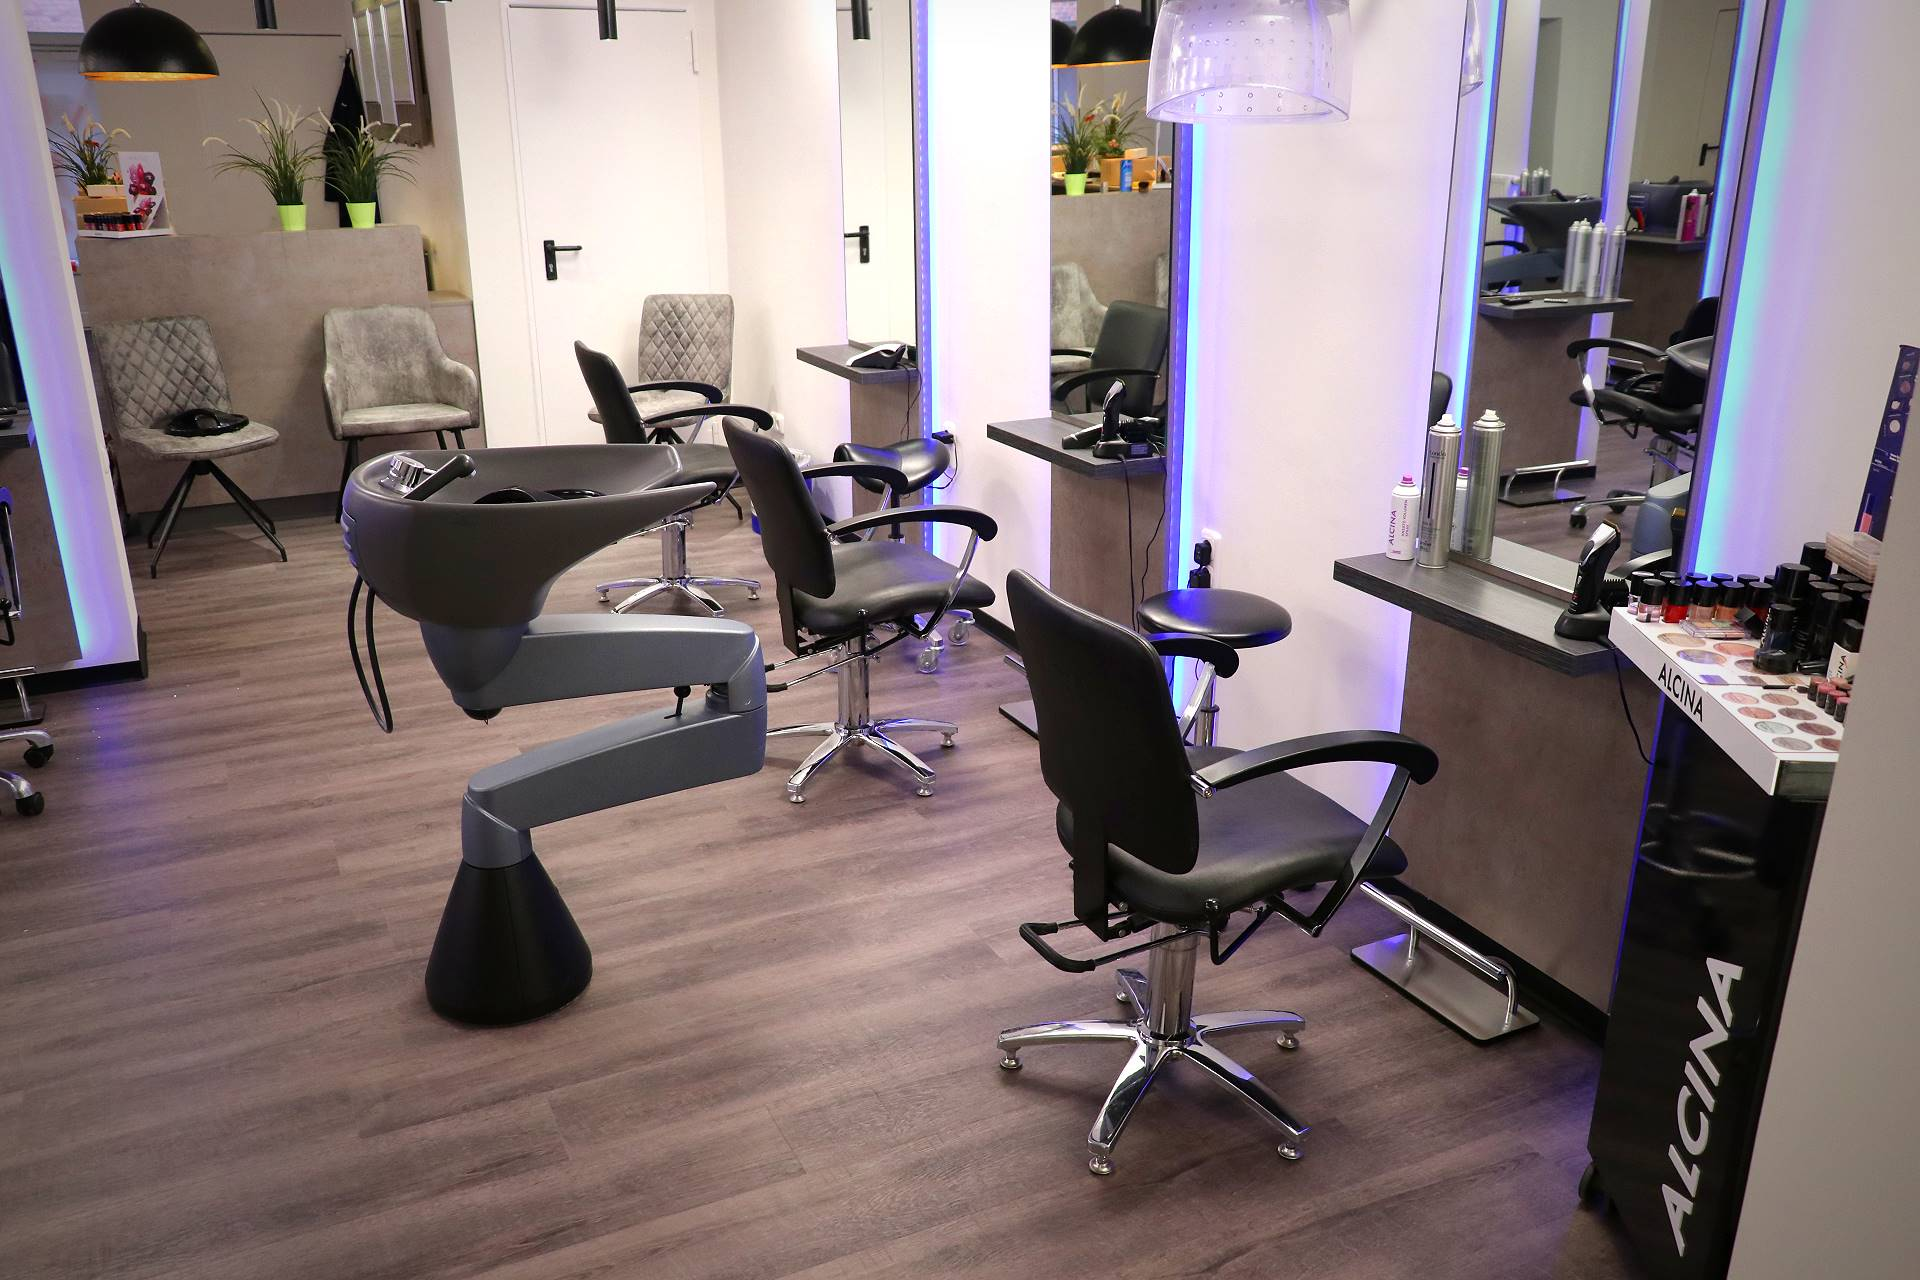 damen-salon-3